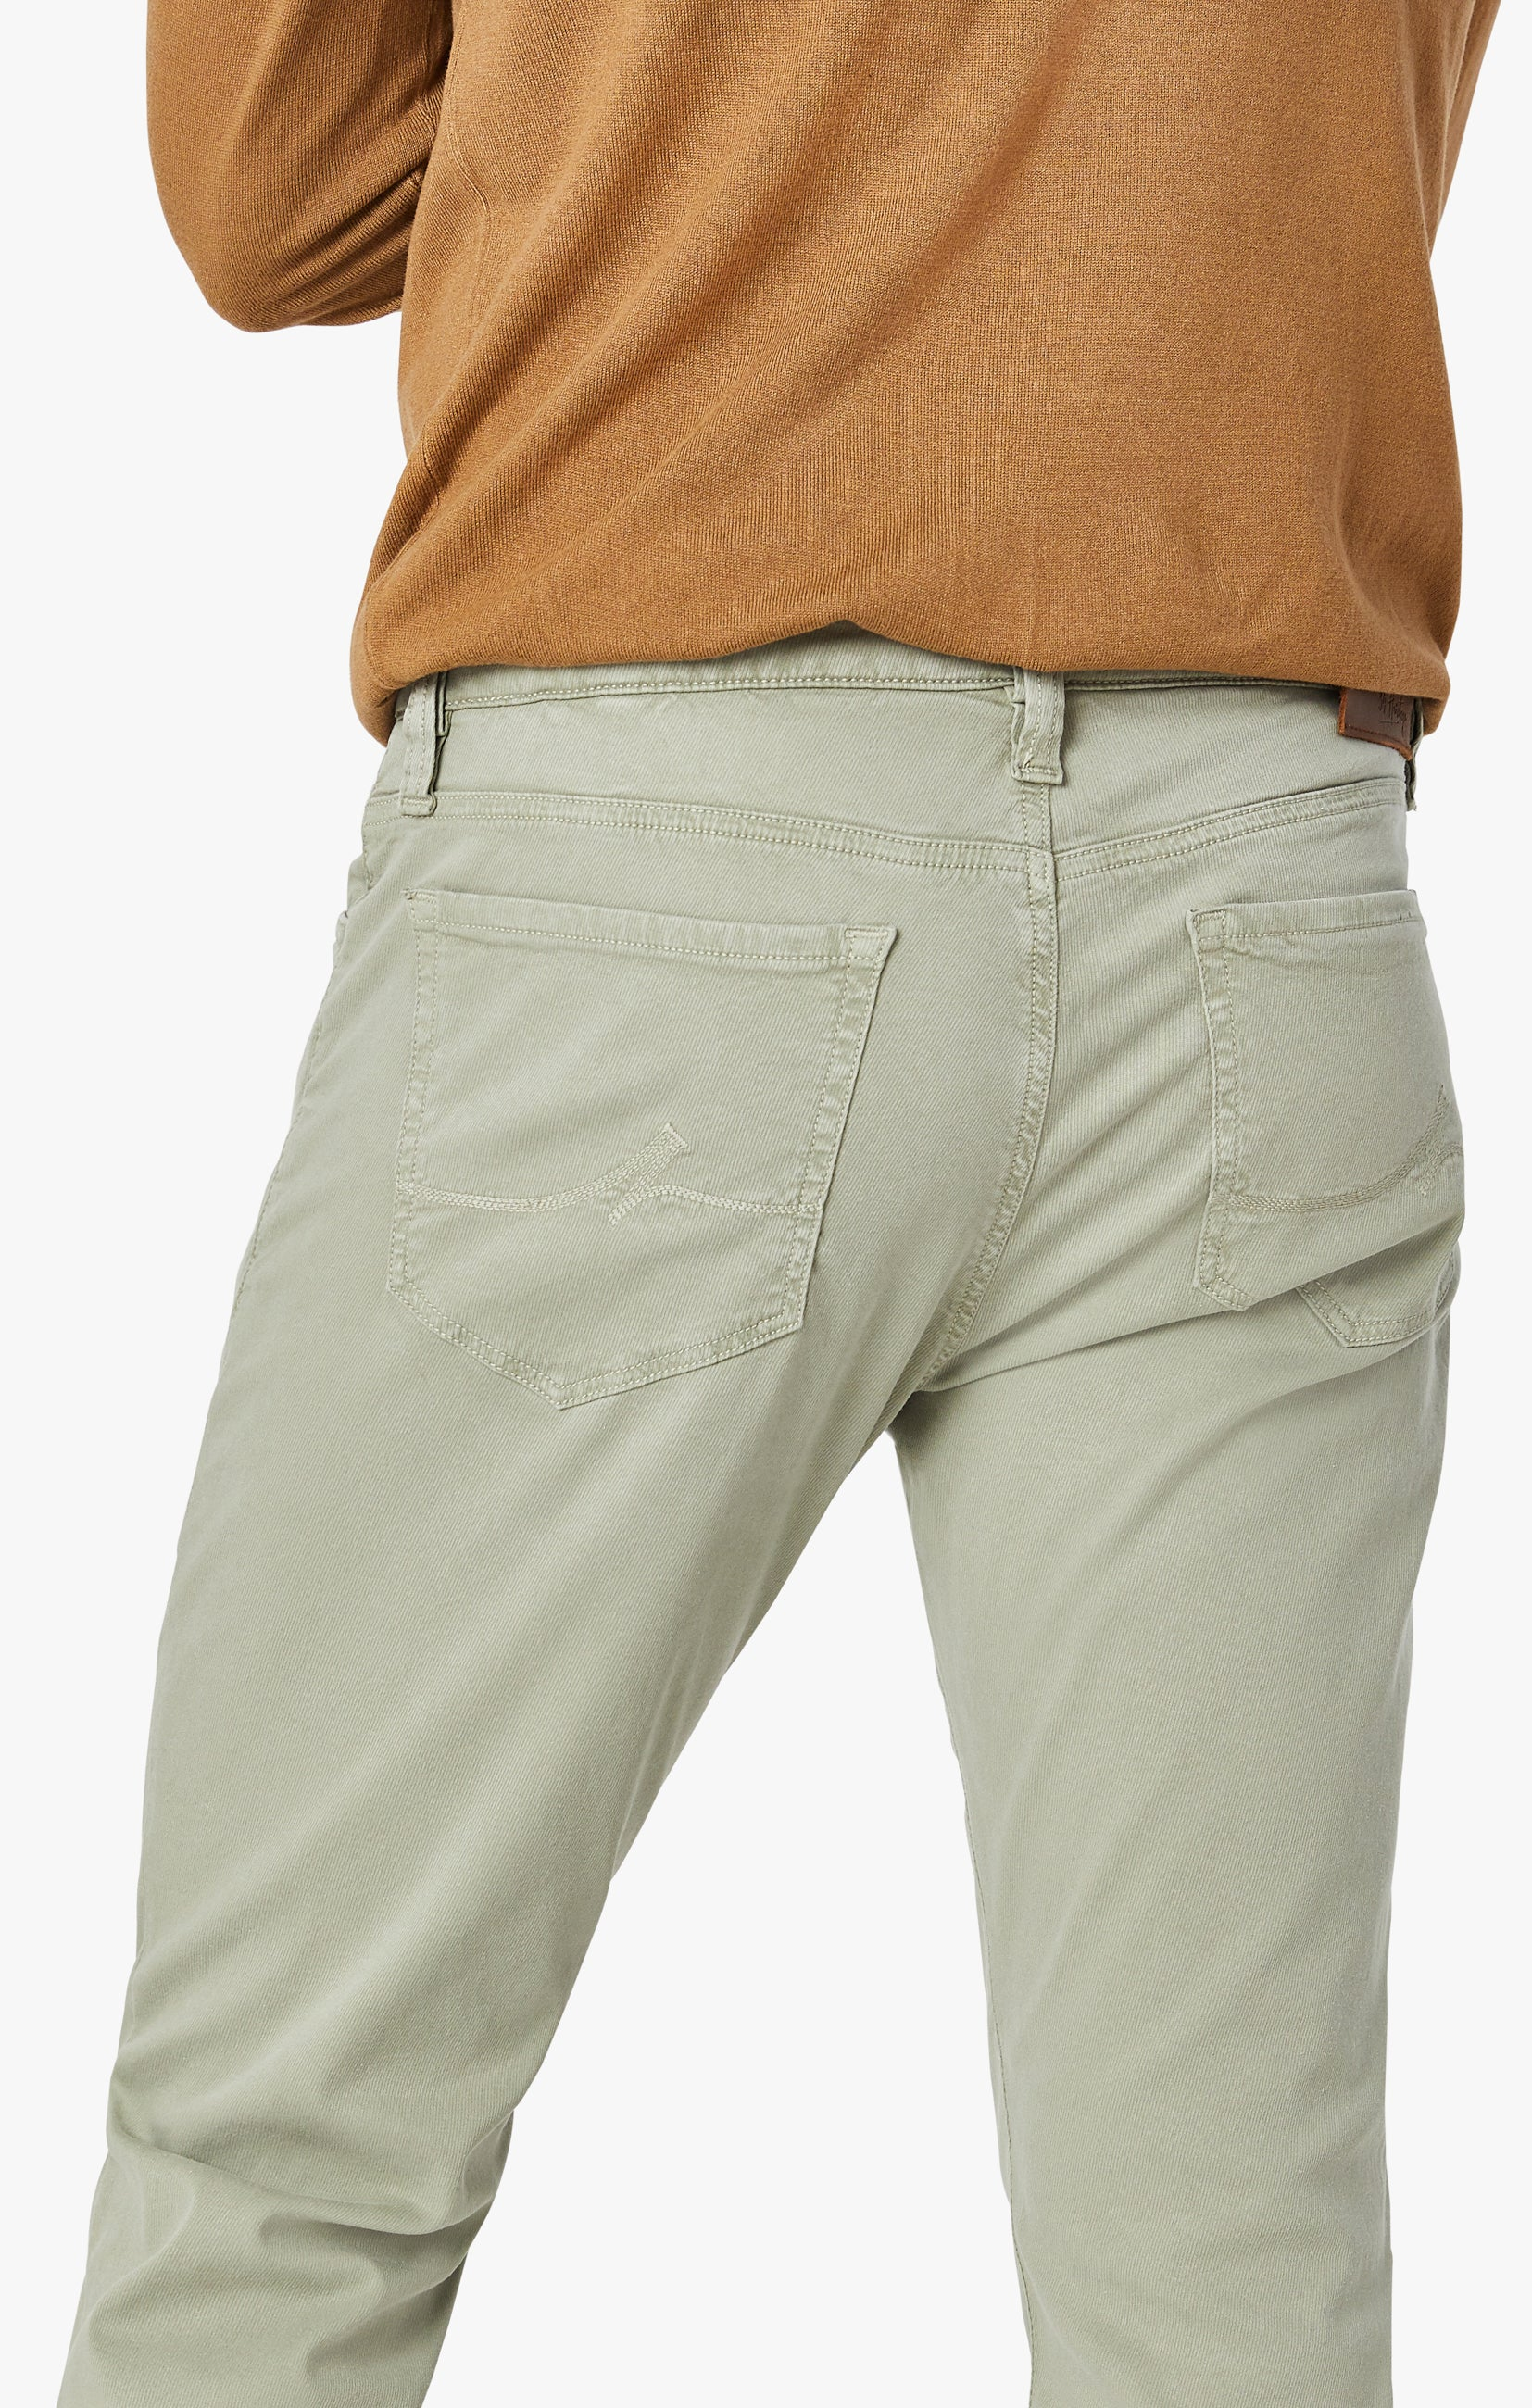 Courage Straight Leg Pants in Sage Soft Touch Image 7